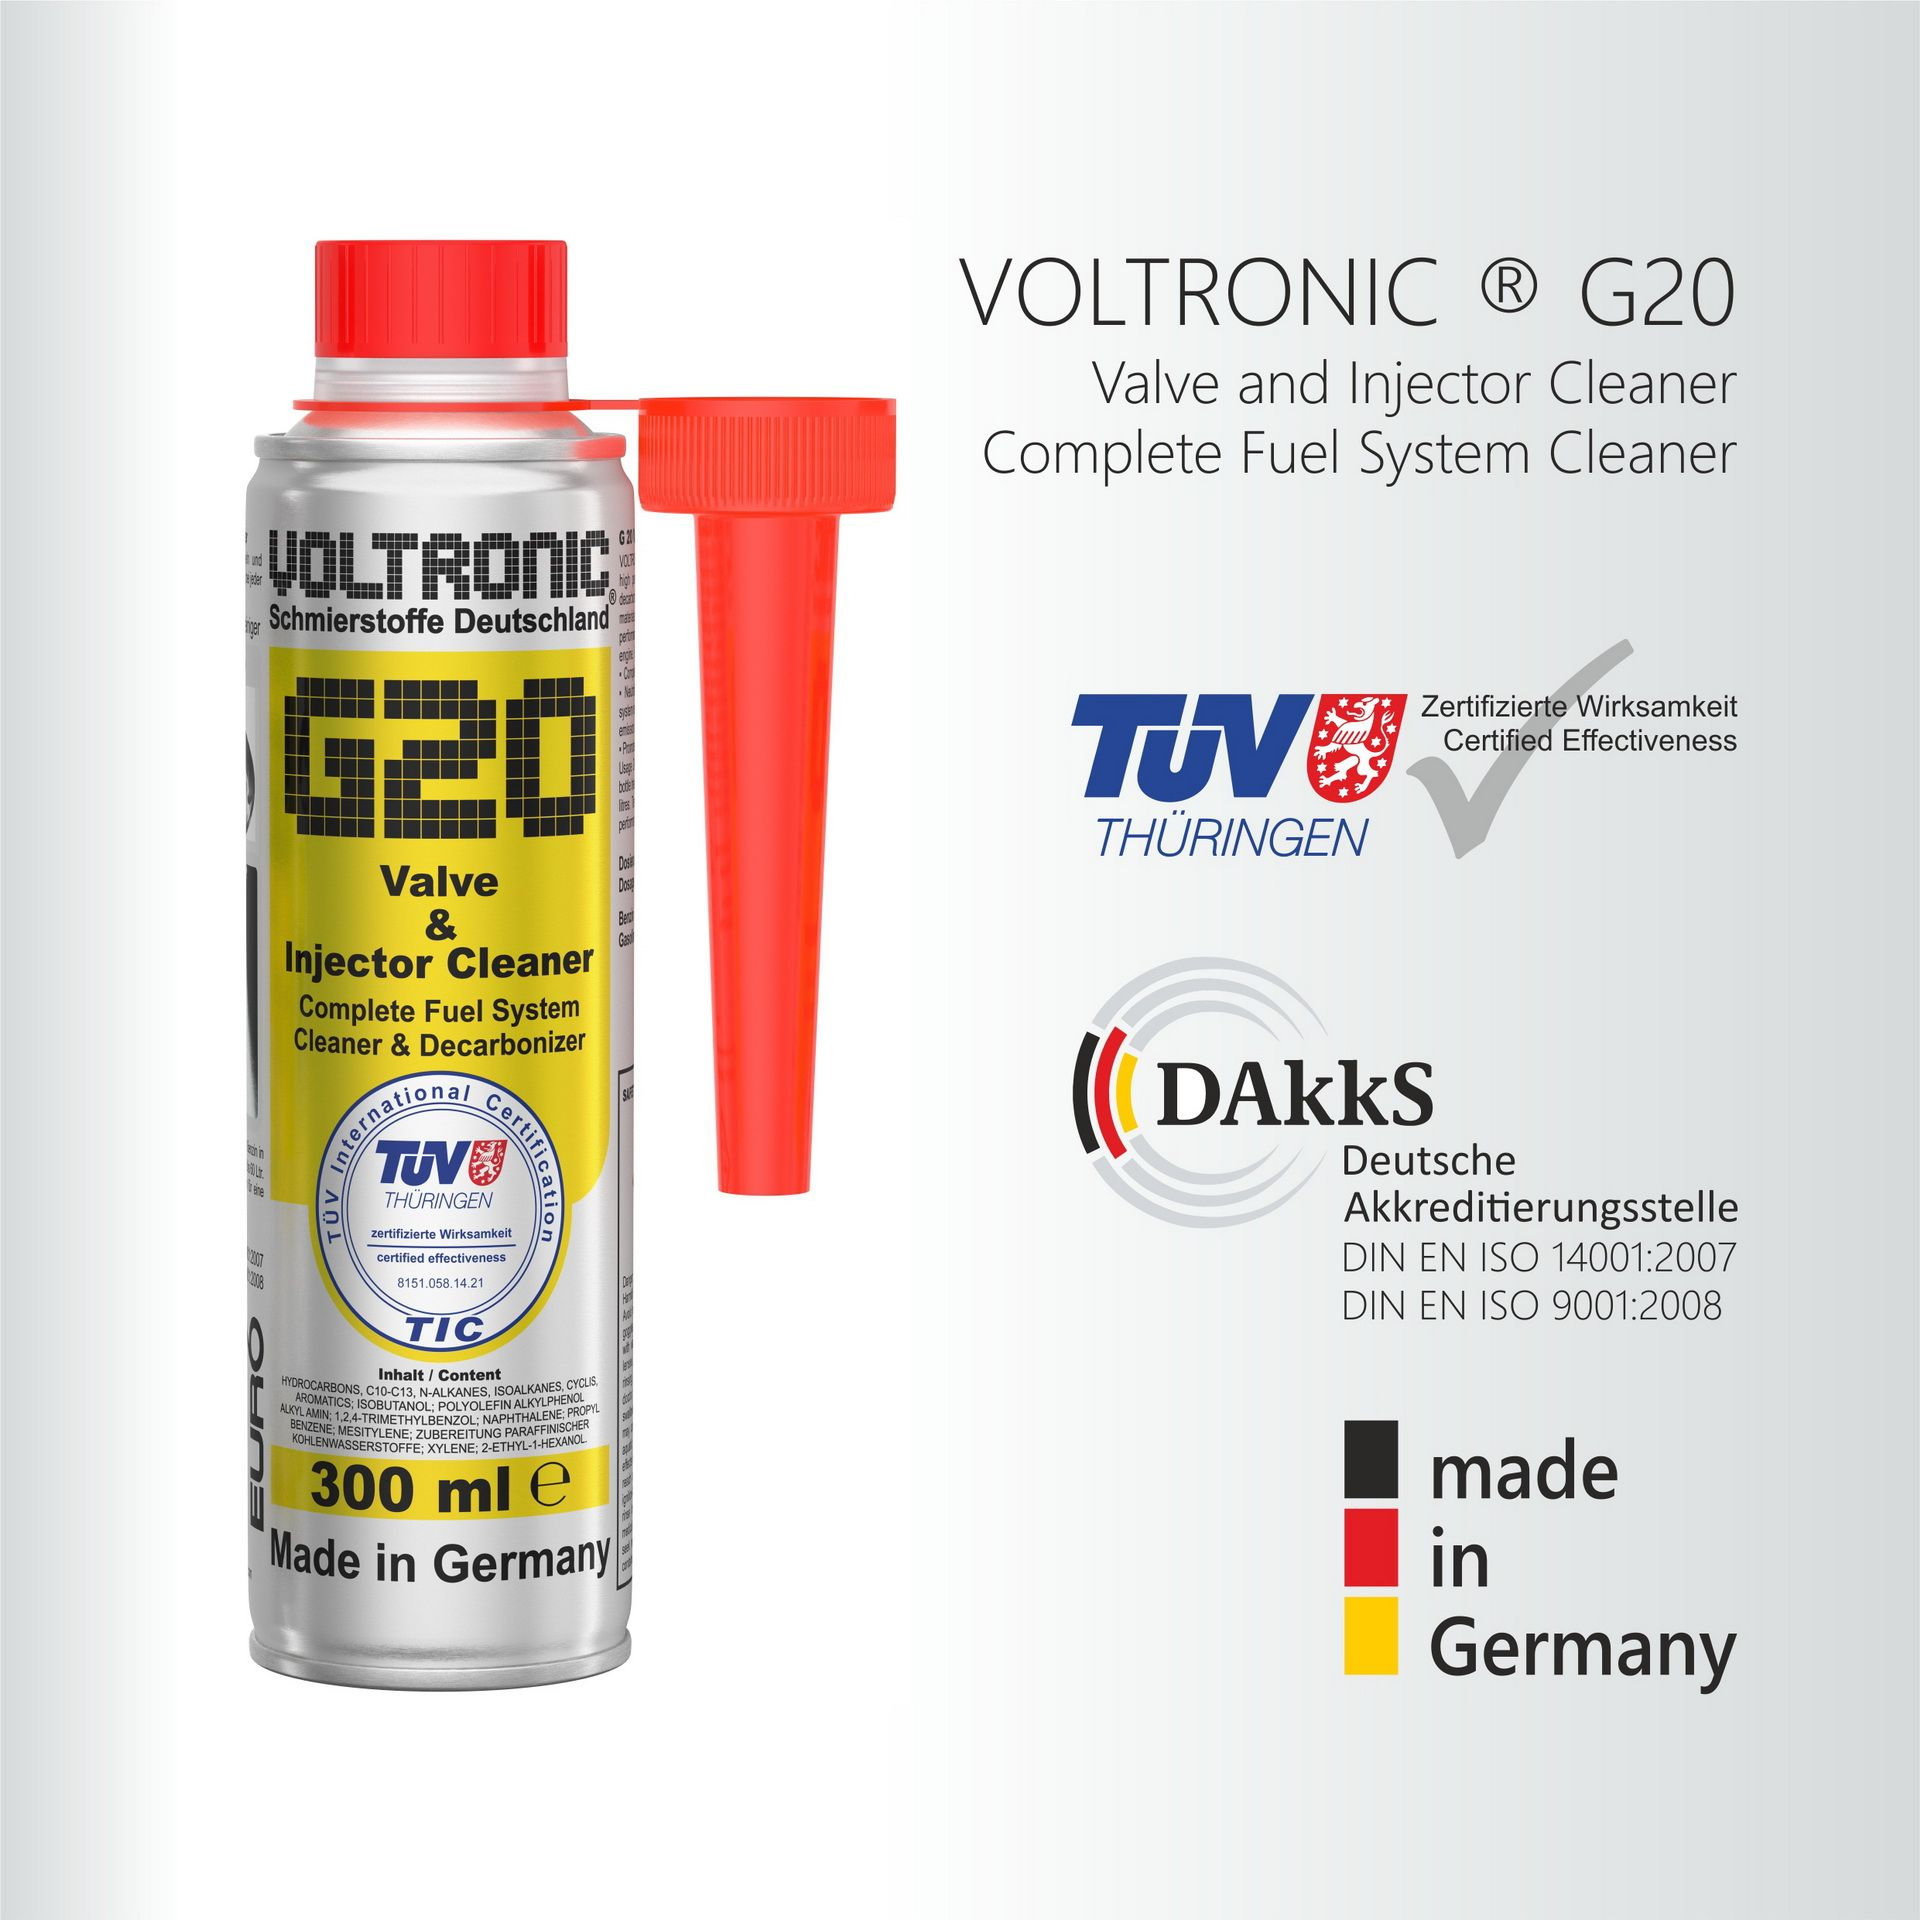 voltronic G20 Valve and Injector Cleaner Benzin, high